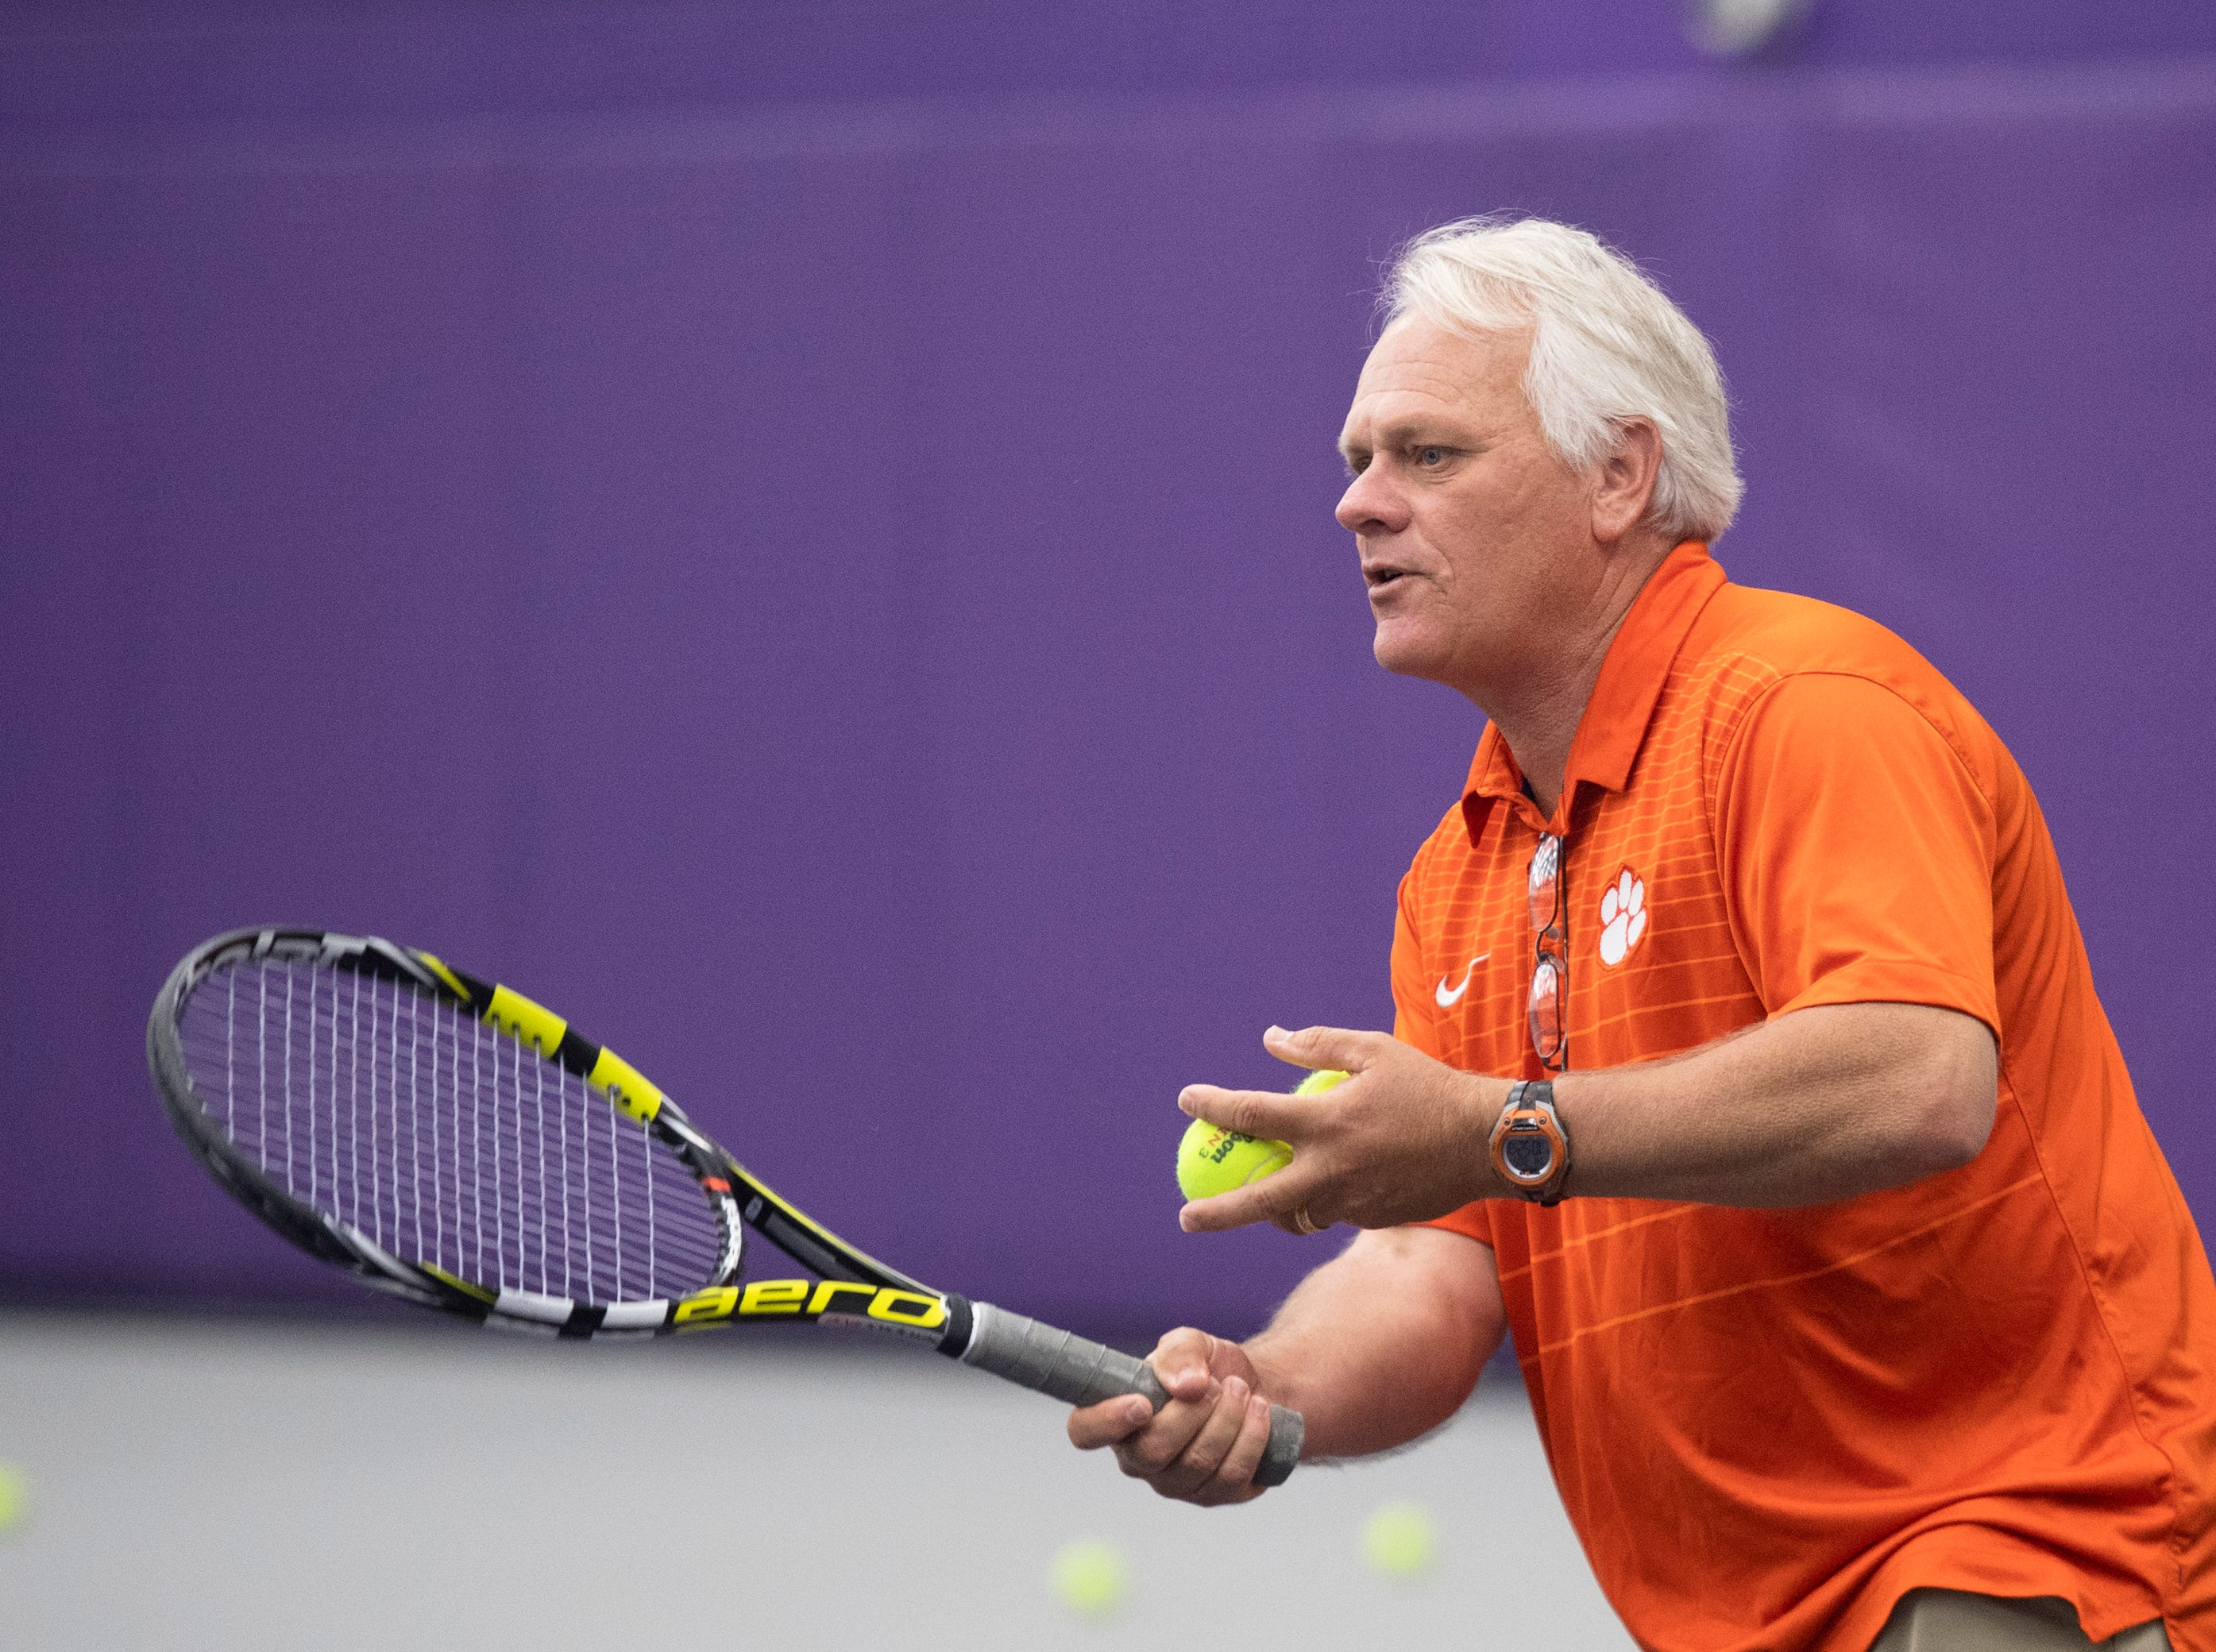 Chuck McCuen hits with Jeff Townsend during tennis practice at Clemson University Friday, May 3, 2019.